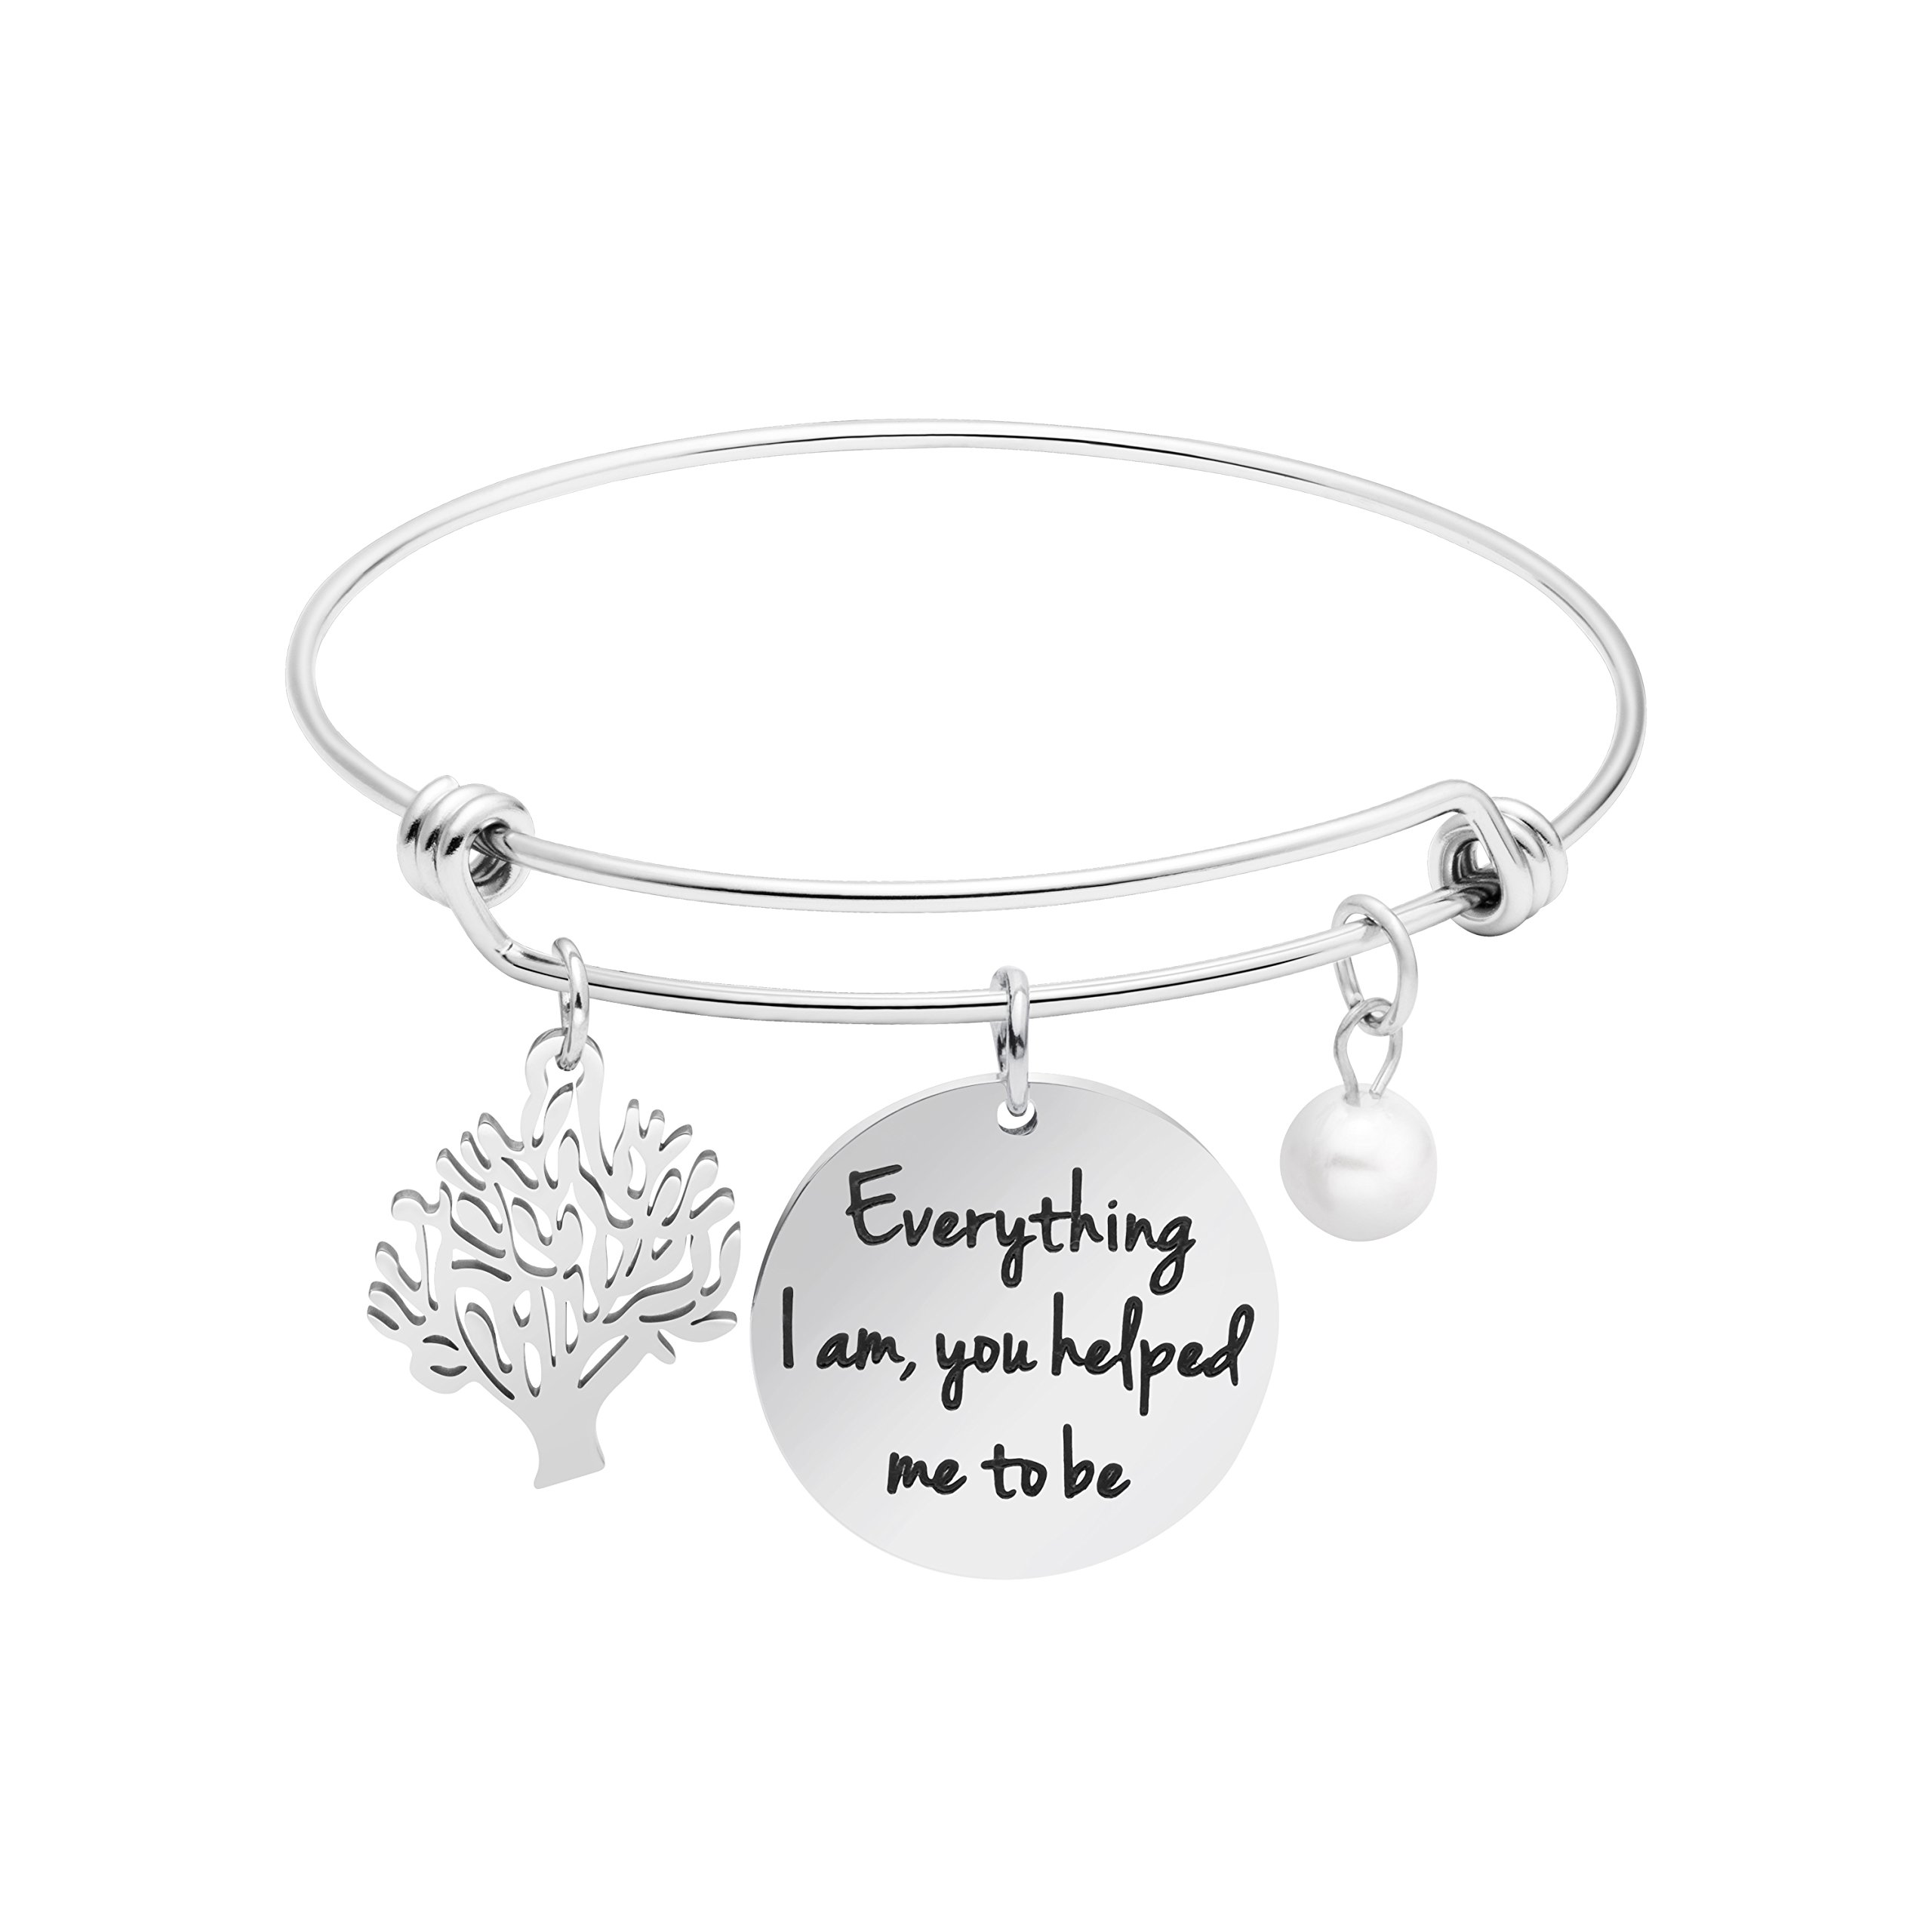 Awegift Expandable Bracelet Tree Life Wedding Party Jewelry Gifts Everything I am, you helped me to be